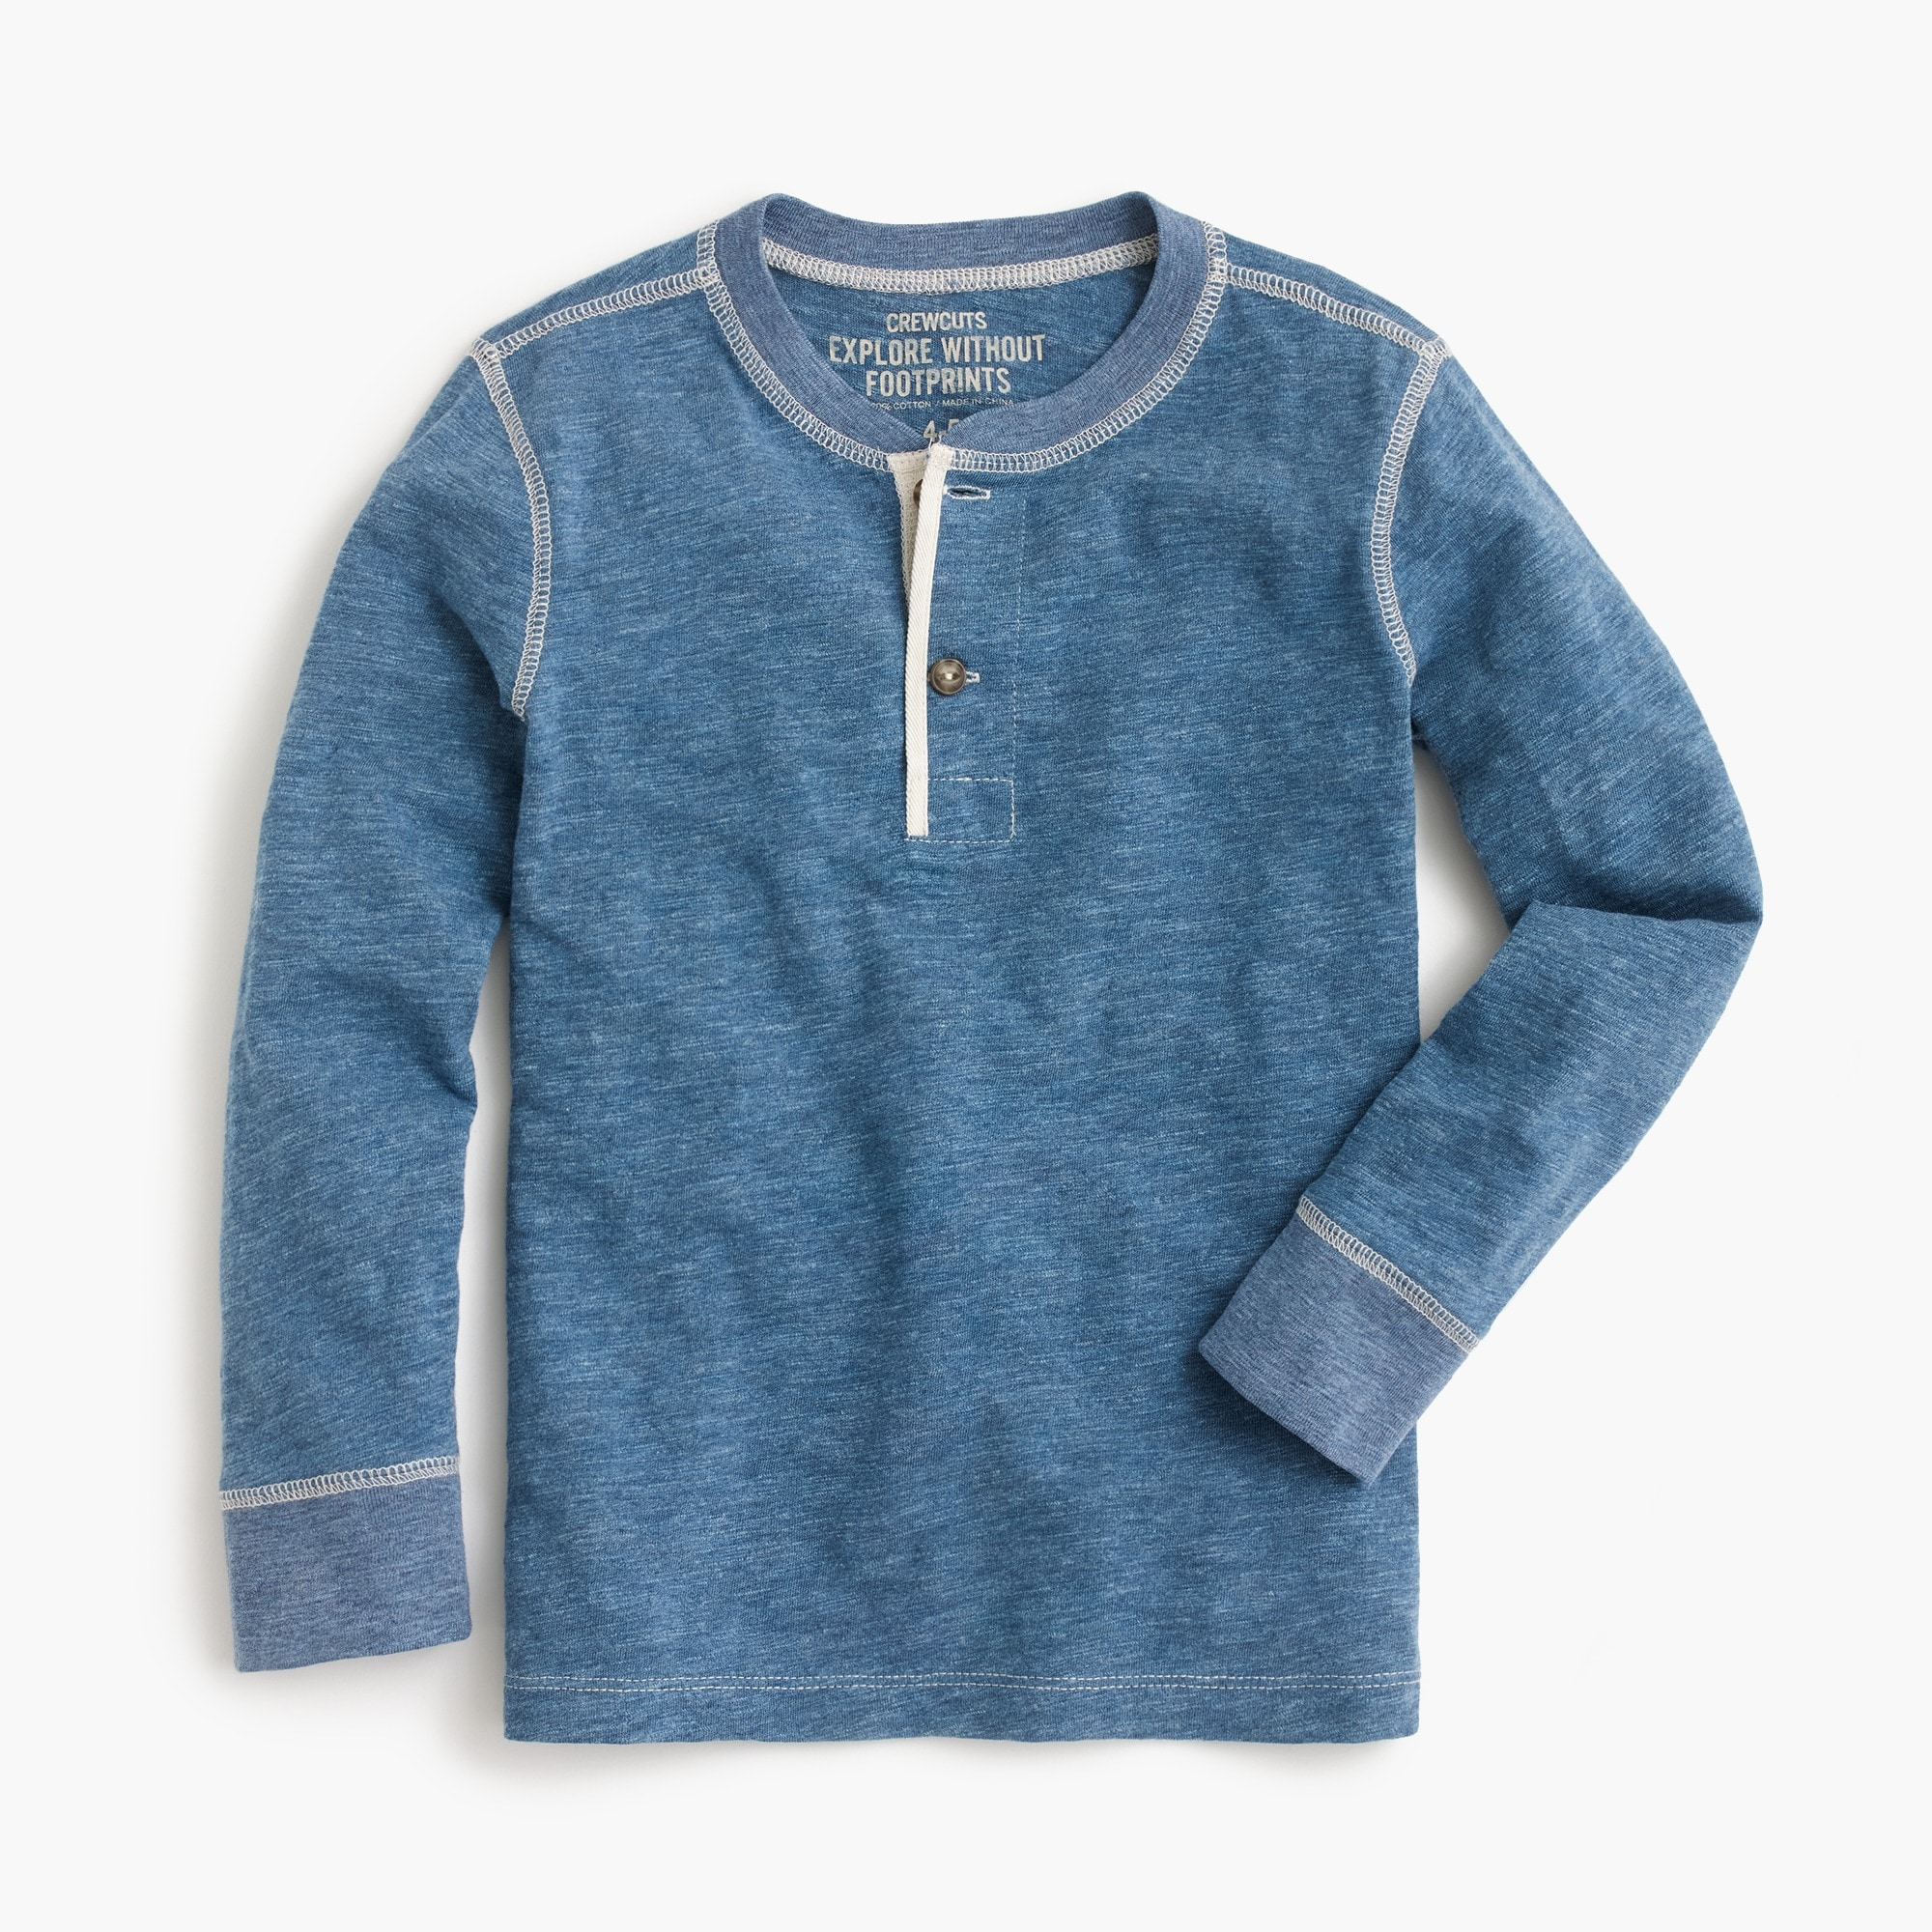 Boys' long-sleeve henley shirt in indigo